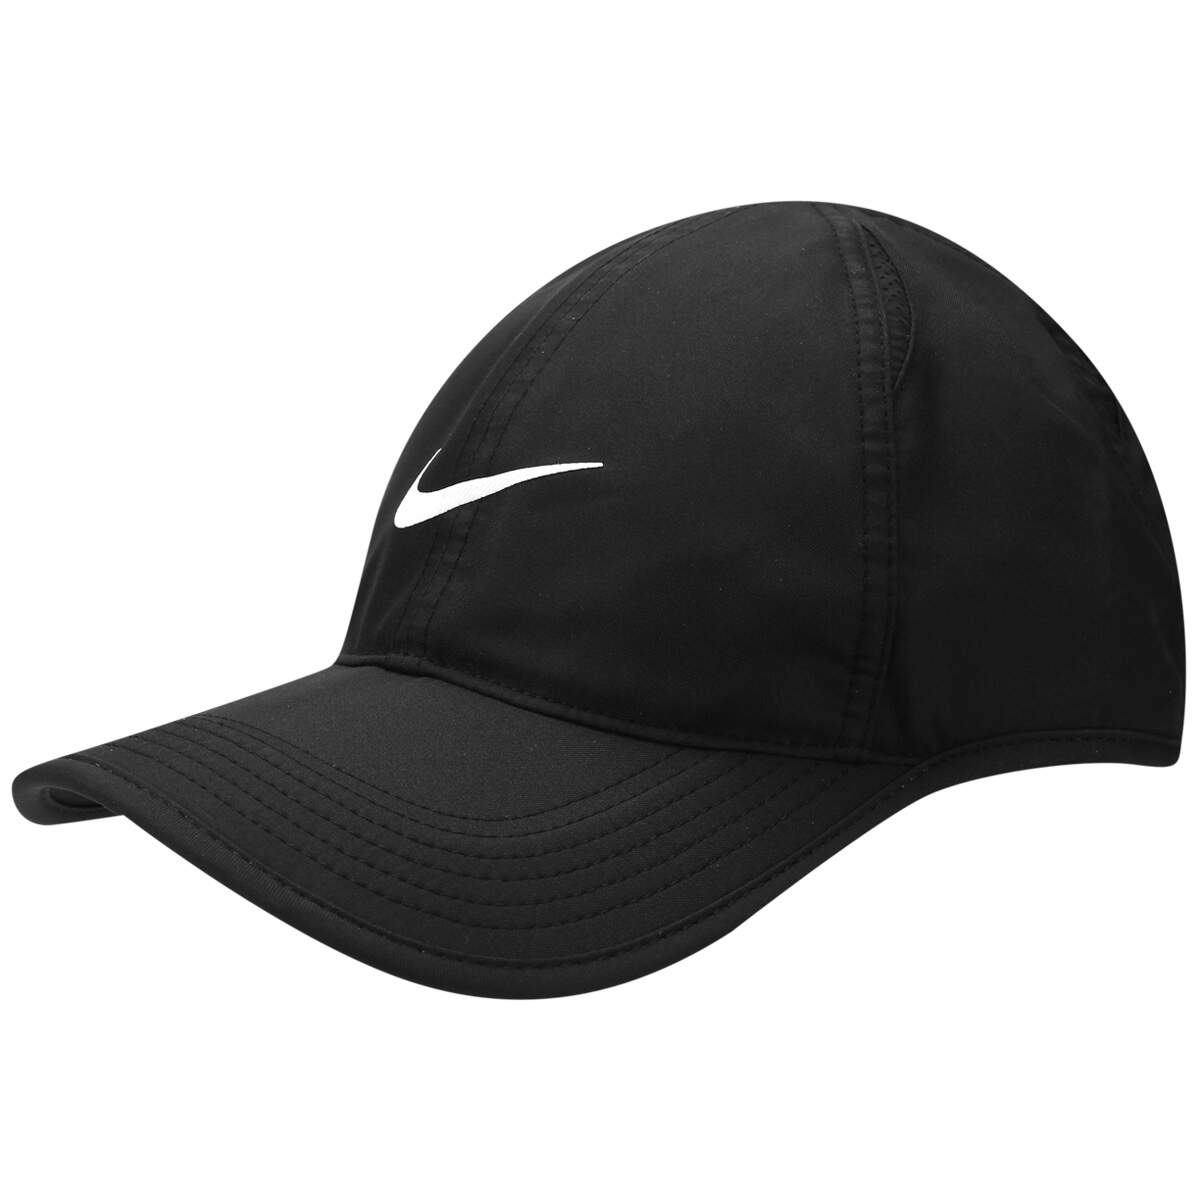 Boné Nike Featherlight Preto